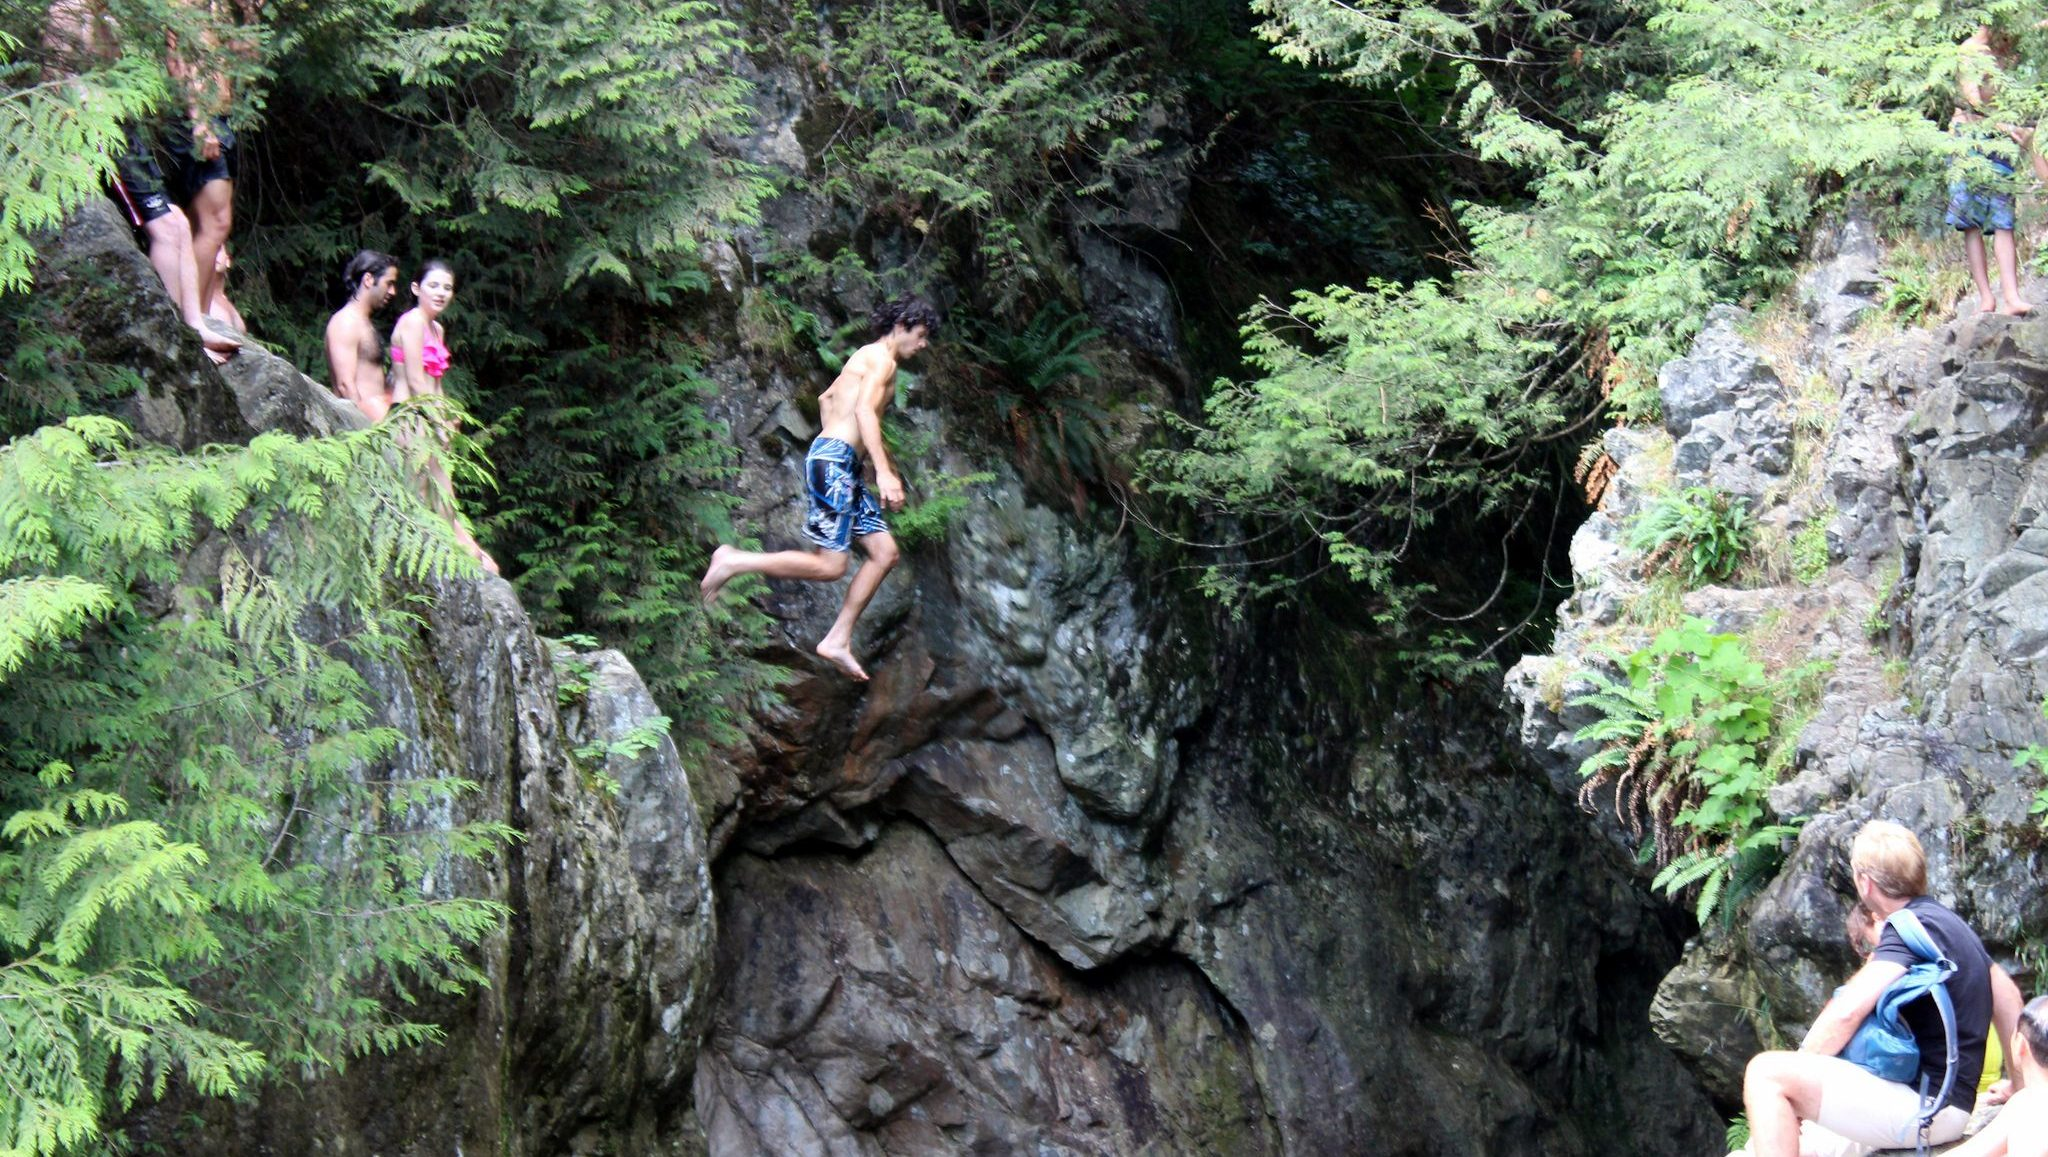 First responders warn of cliff jumping after close call in Lynn Canyon